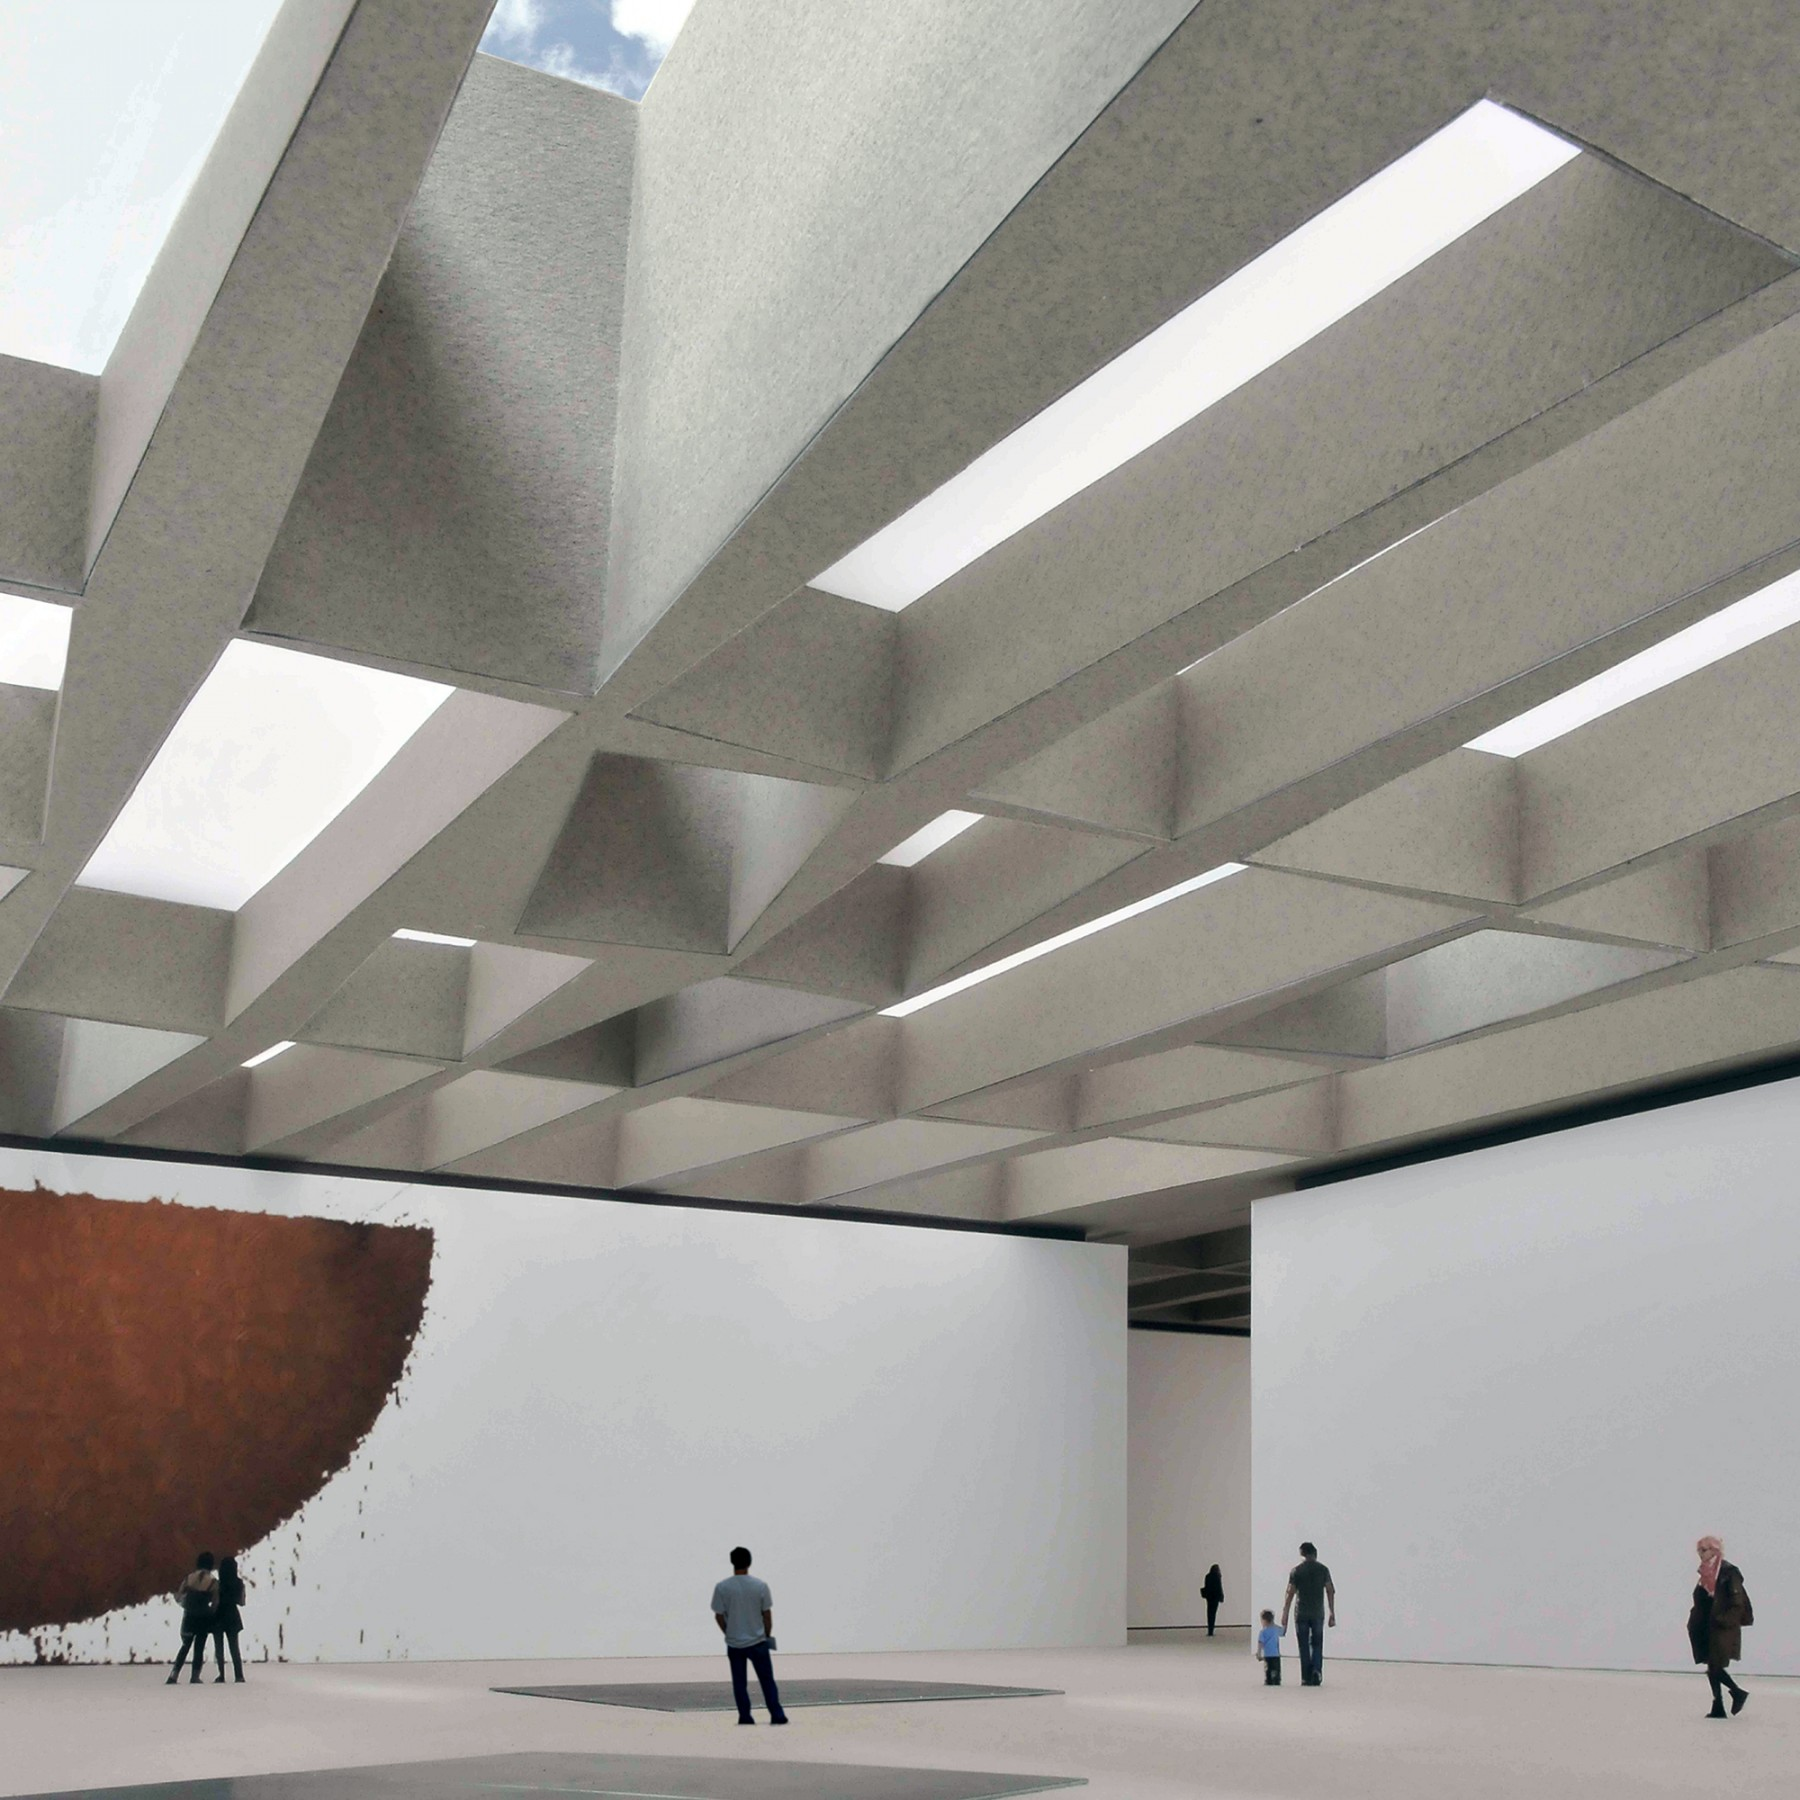 Victoria-and-Albert-Museum-V&A-competition-Exhibition-Road-gallery-London-Sir-Aston-Webb-design-short-list-Jamie-Fobert-architects-interior-1